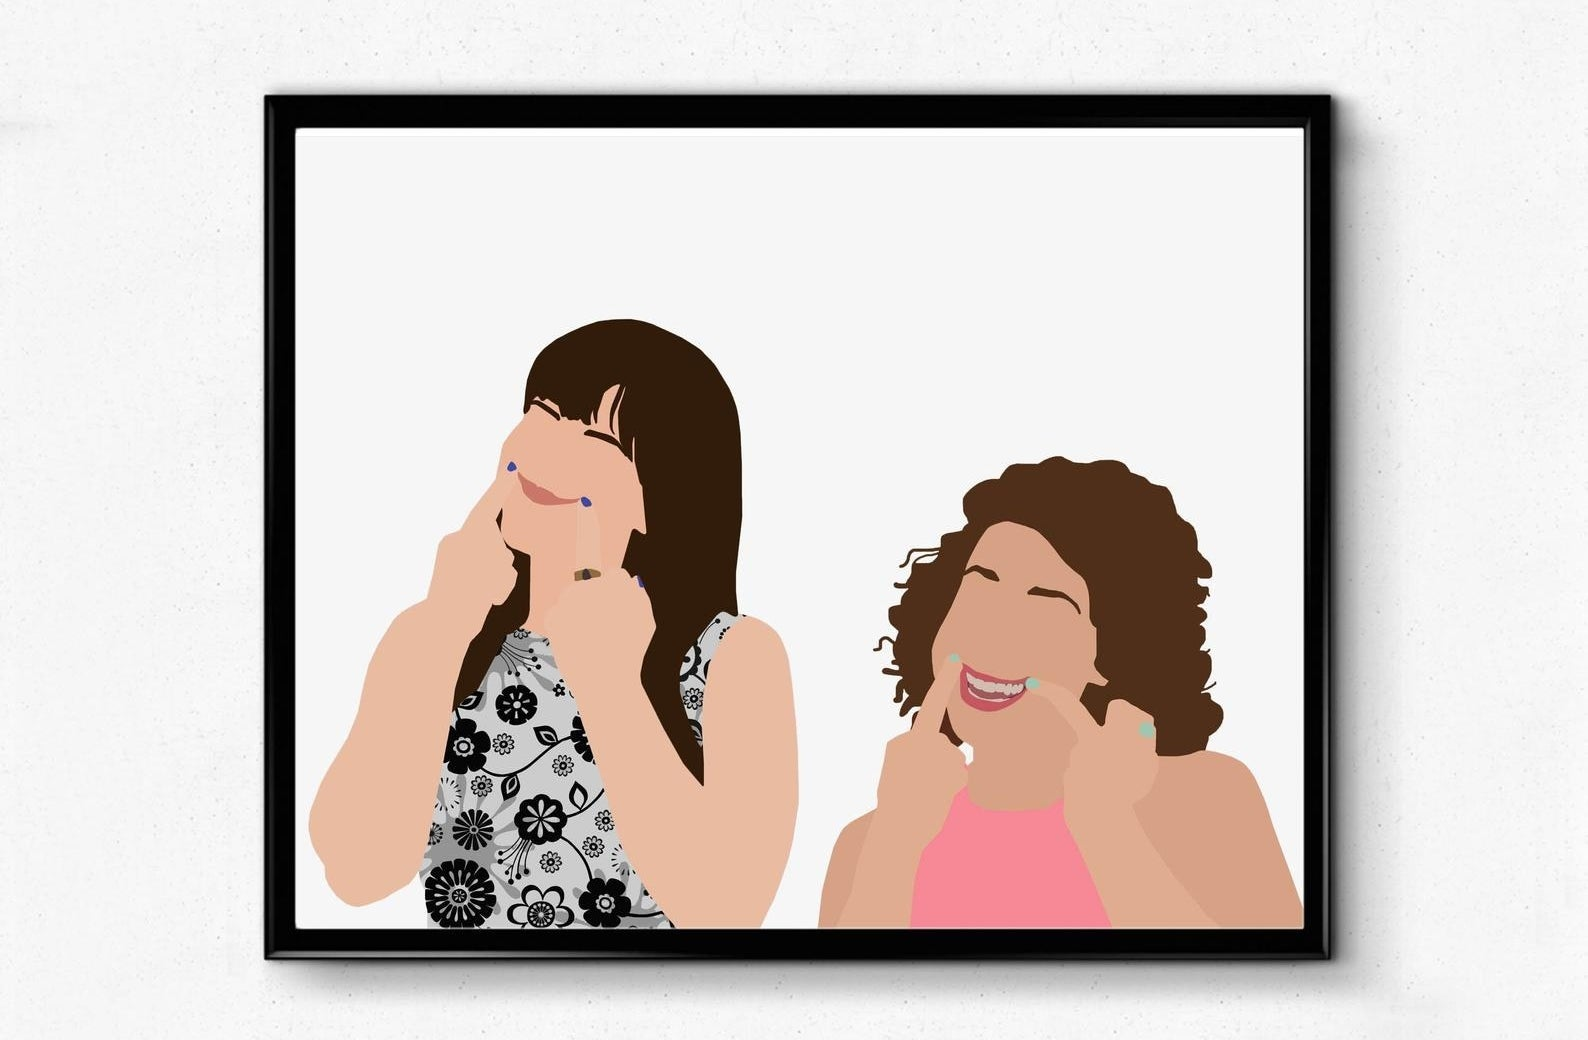 A print with Abby and Ilana making fake smiles with their middle fingers